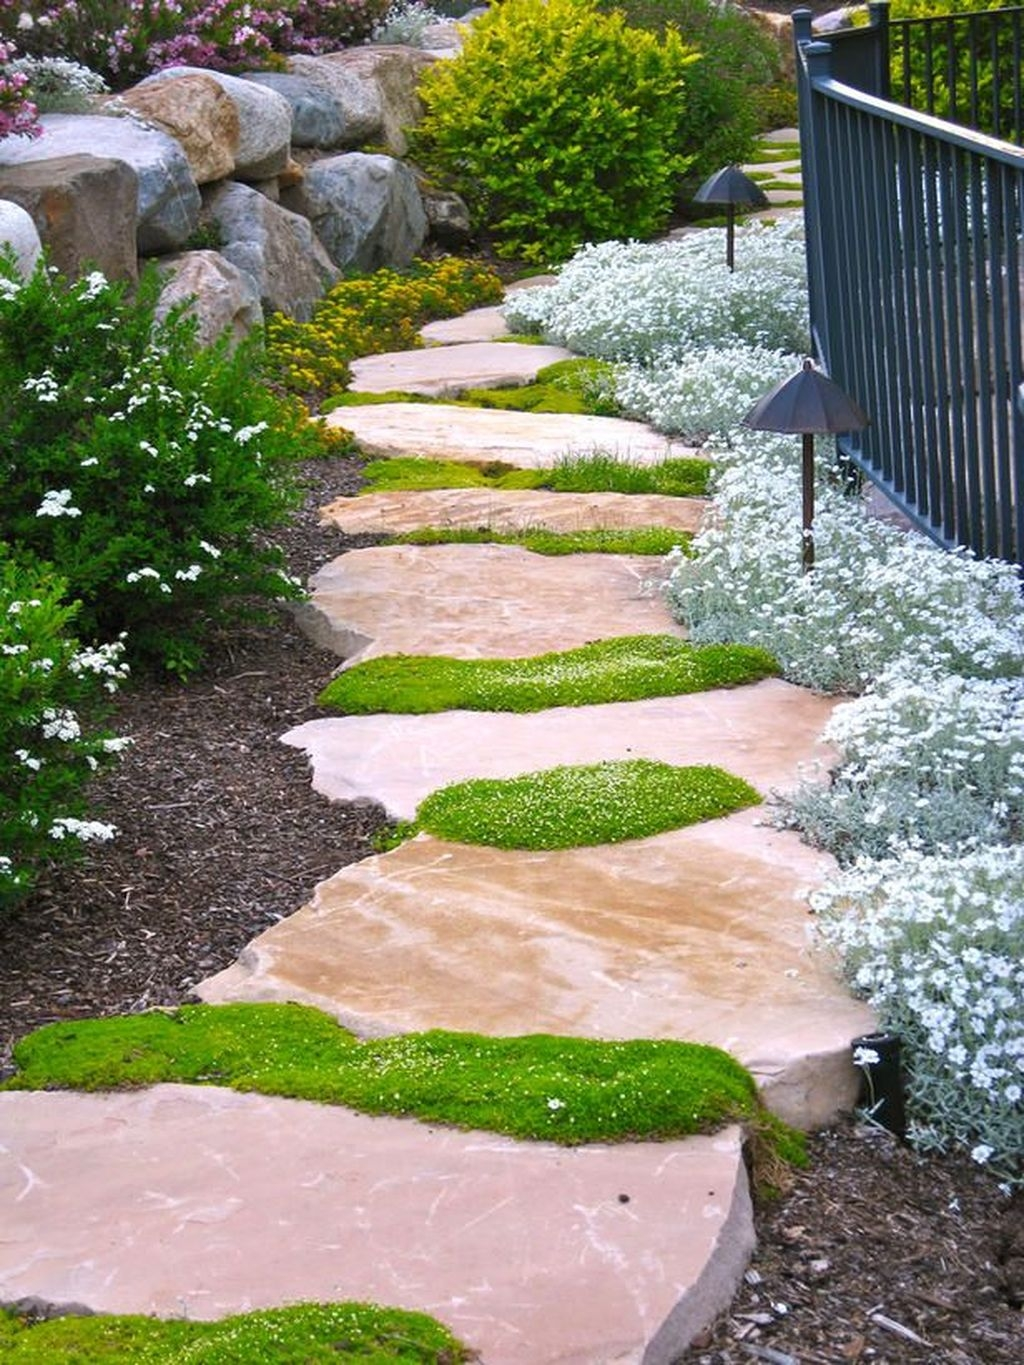 Inspiring Stepping Stone Pathway Decor Ideas For Your Garden13